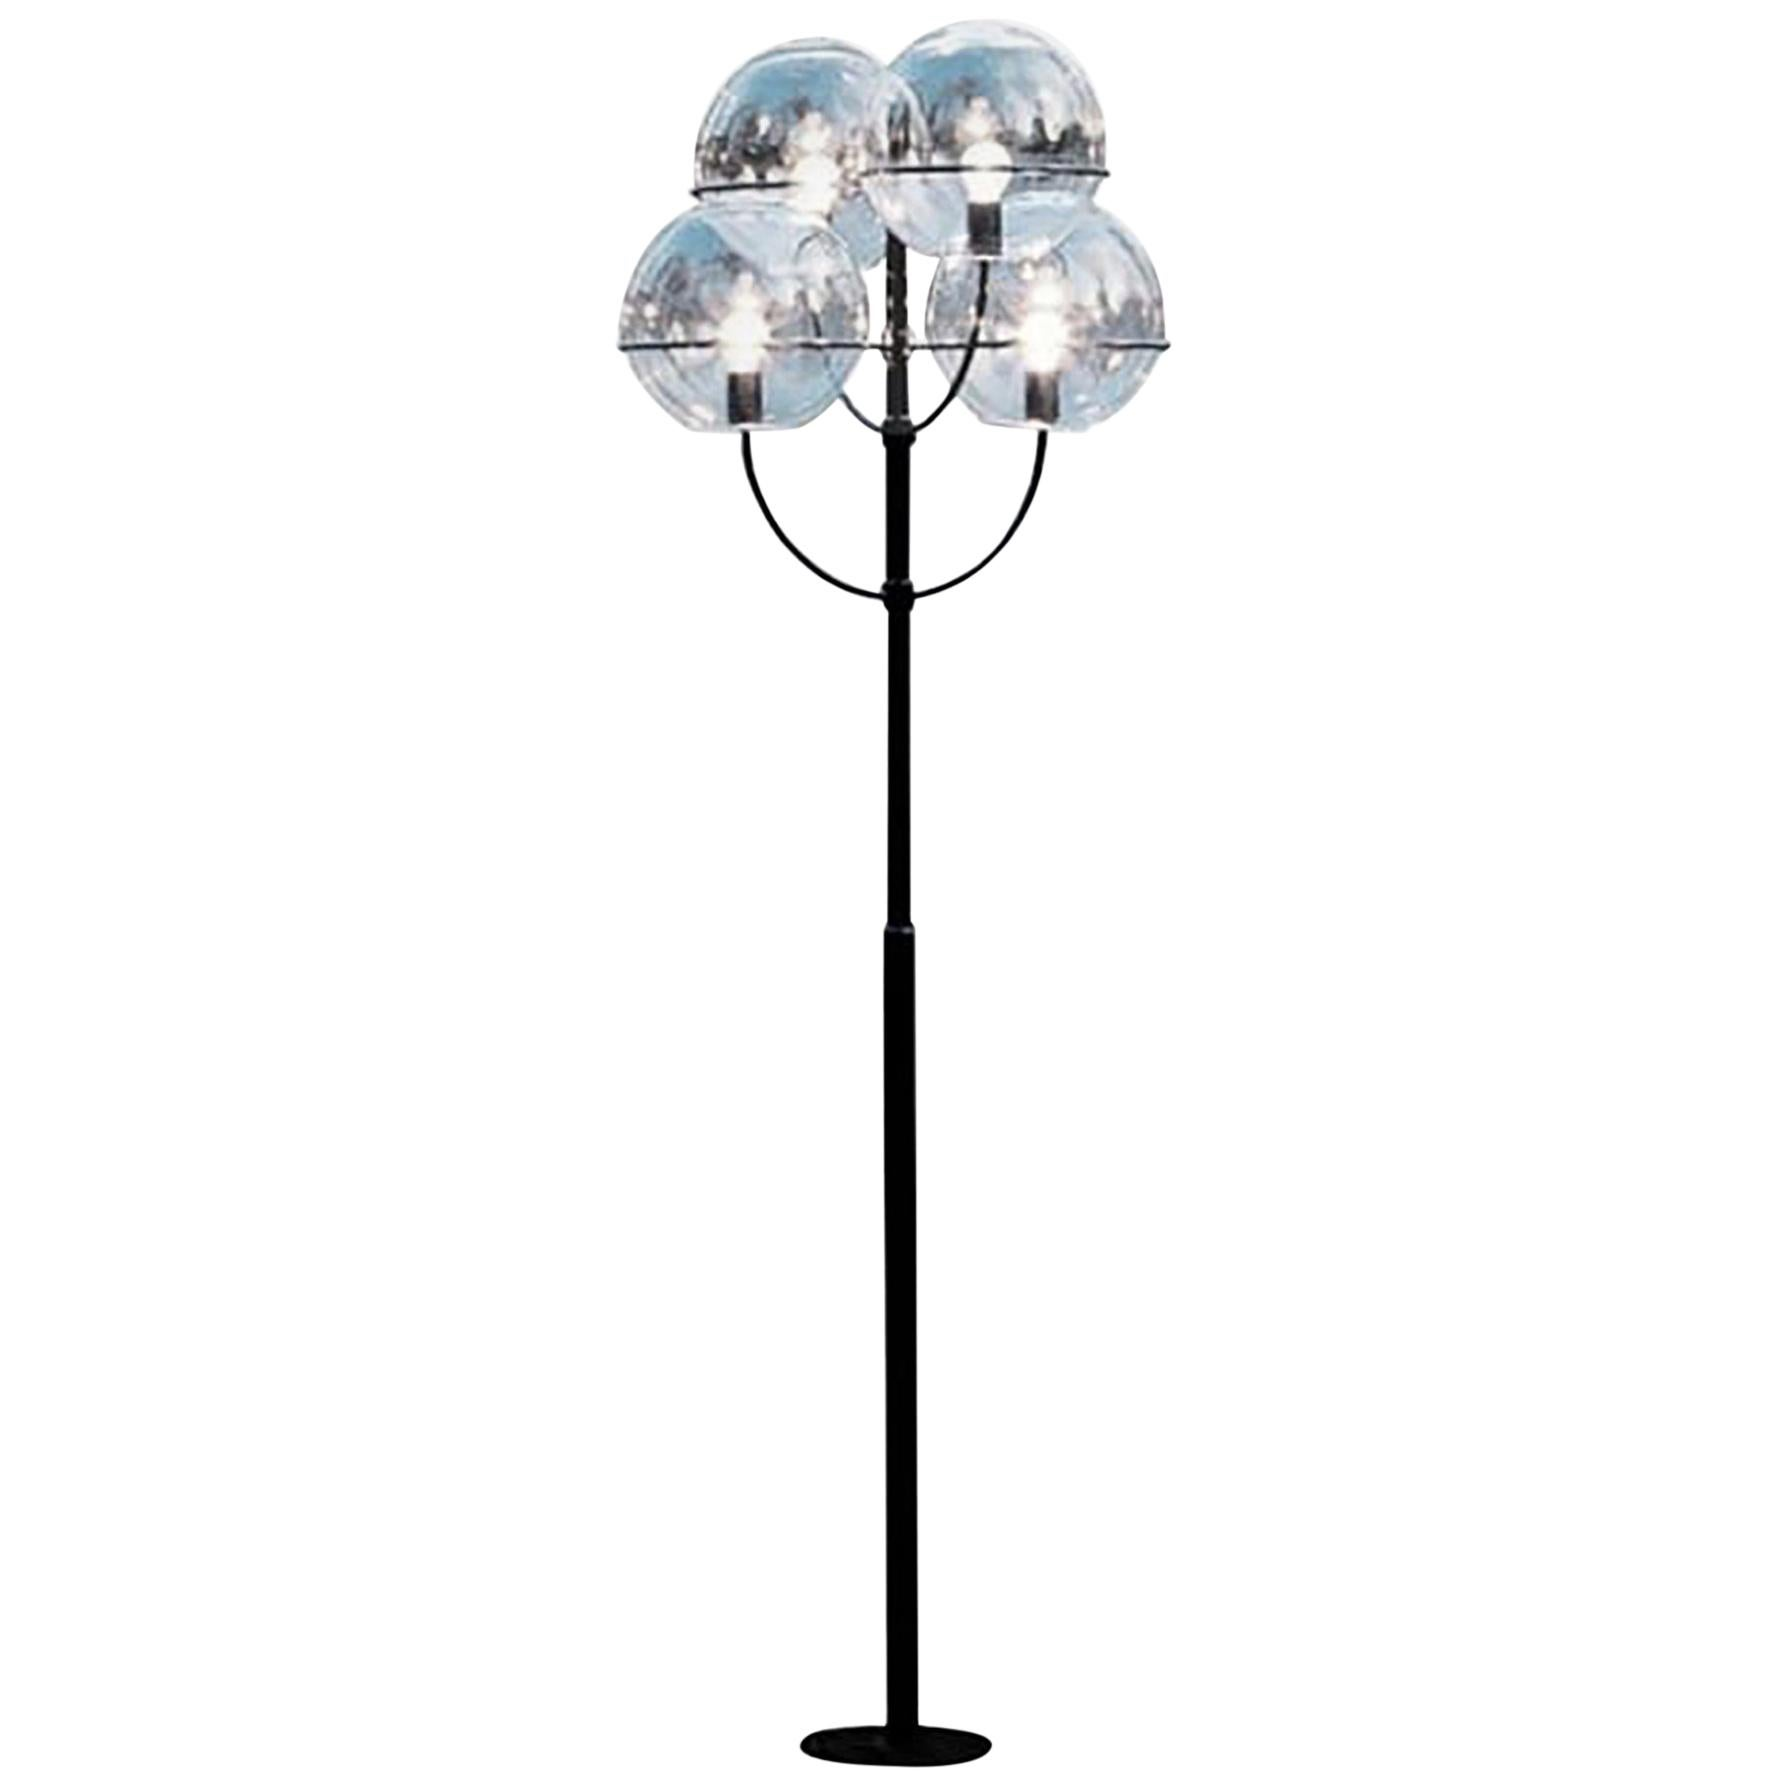 Lyndon 350 Outdoor Lamp by Vico Magistretti for Oluce